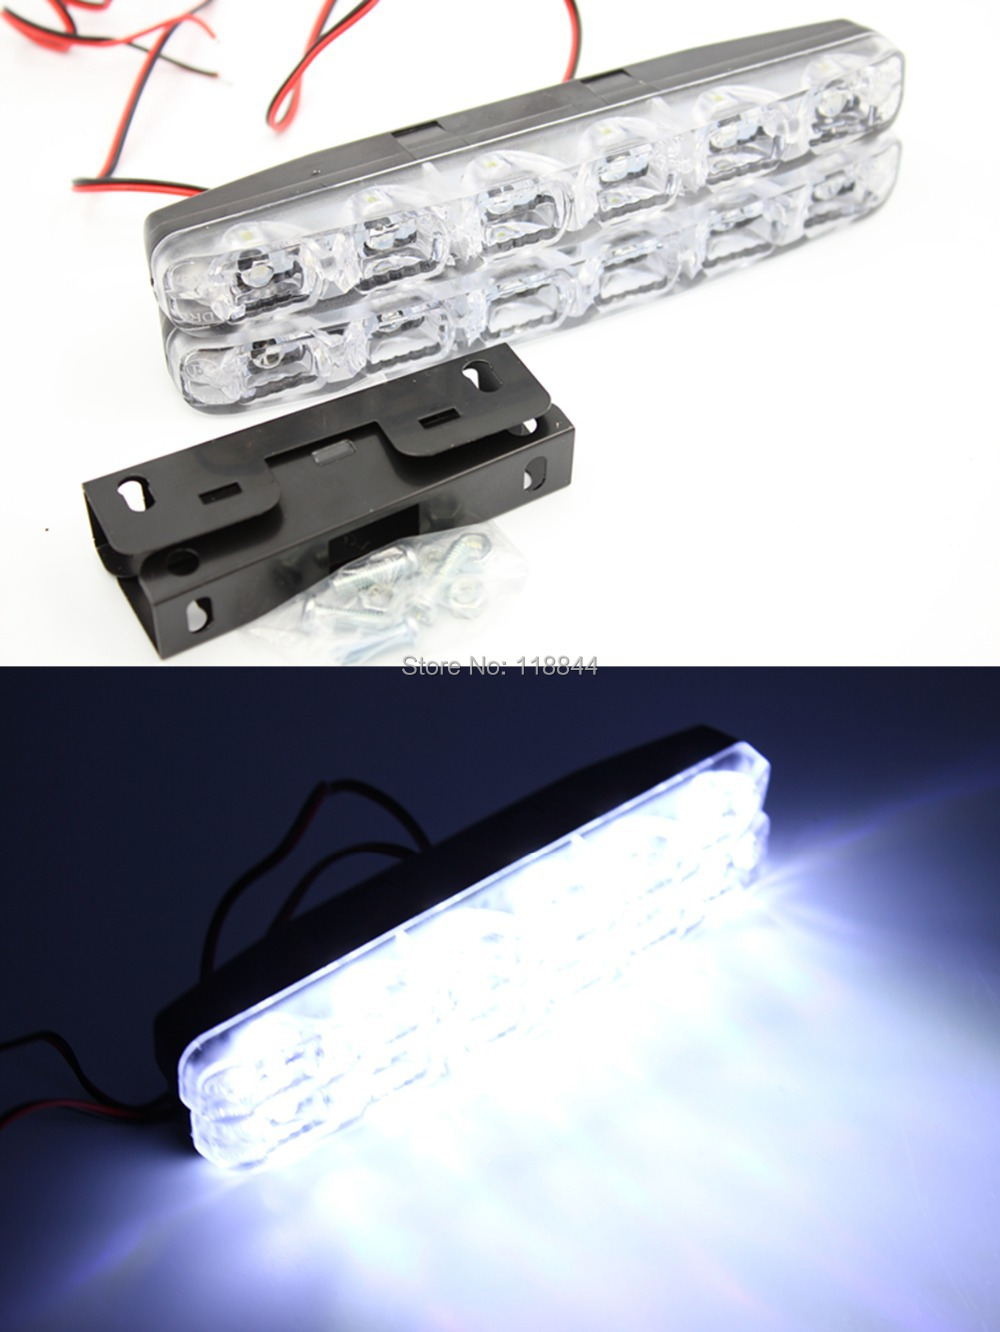 New 2Pcs E4 100% WATERPROOF 6W Car Daytime Running <font><b>Lights</b></font> <font><b>6</b></font> <font><b>LED</b></font> DRL Fog lamp bulb Daylight Kit Super White 12V DC image